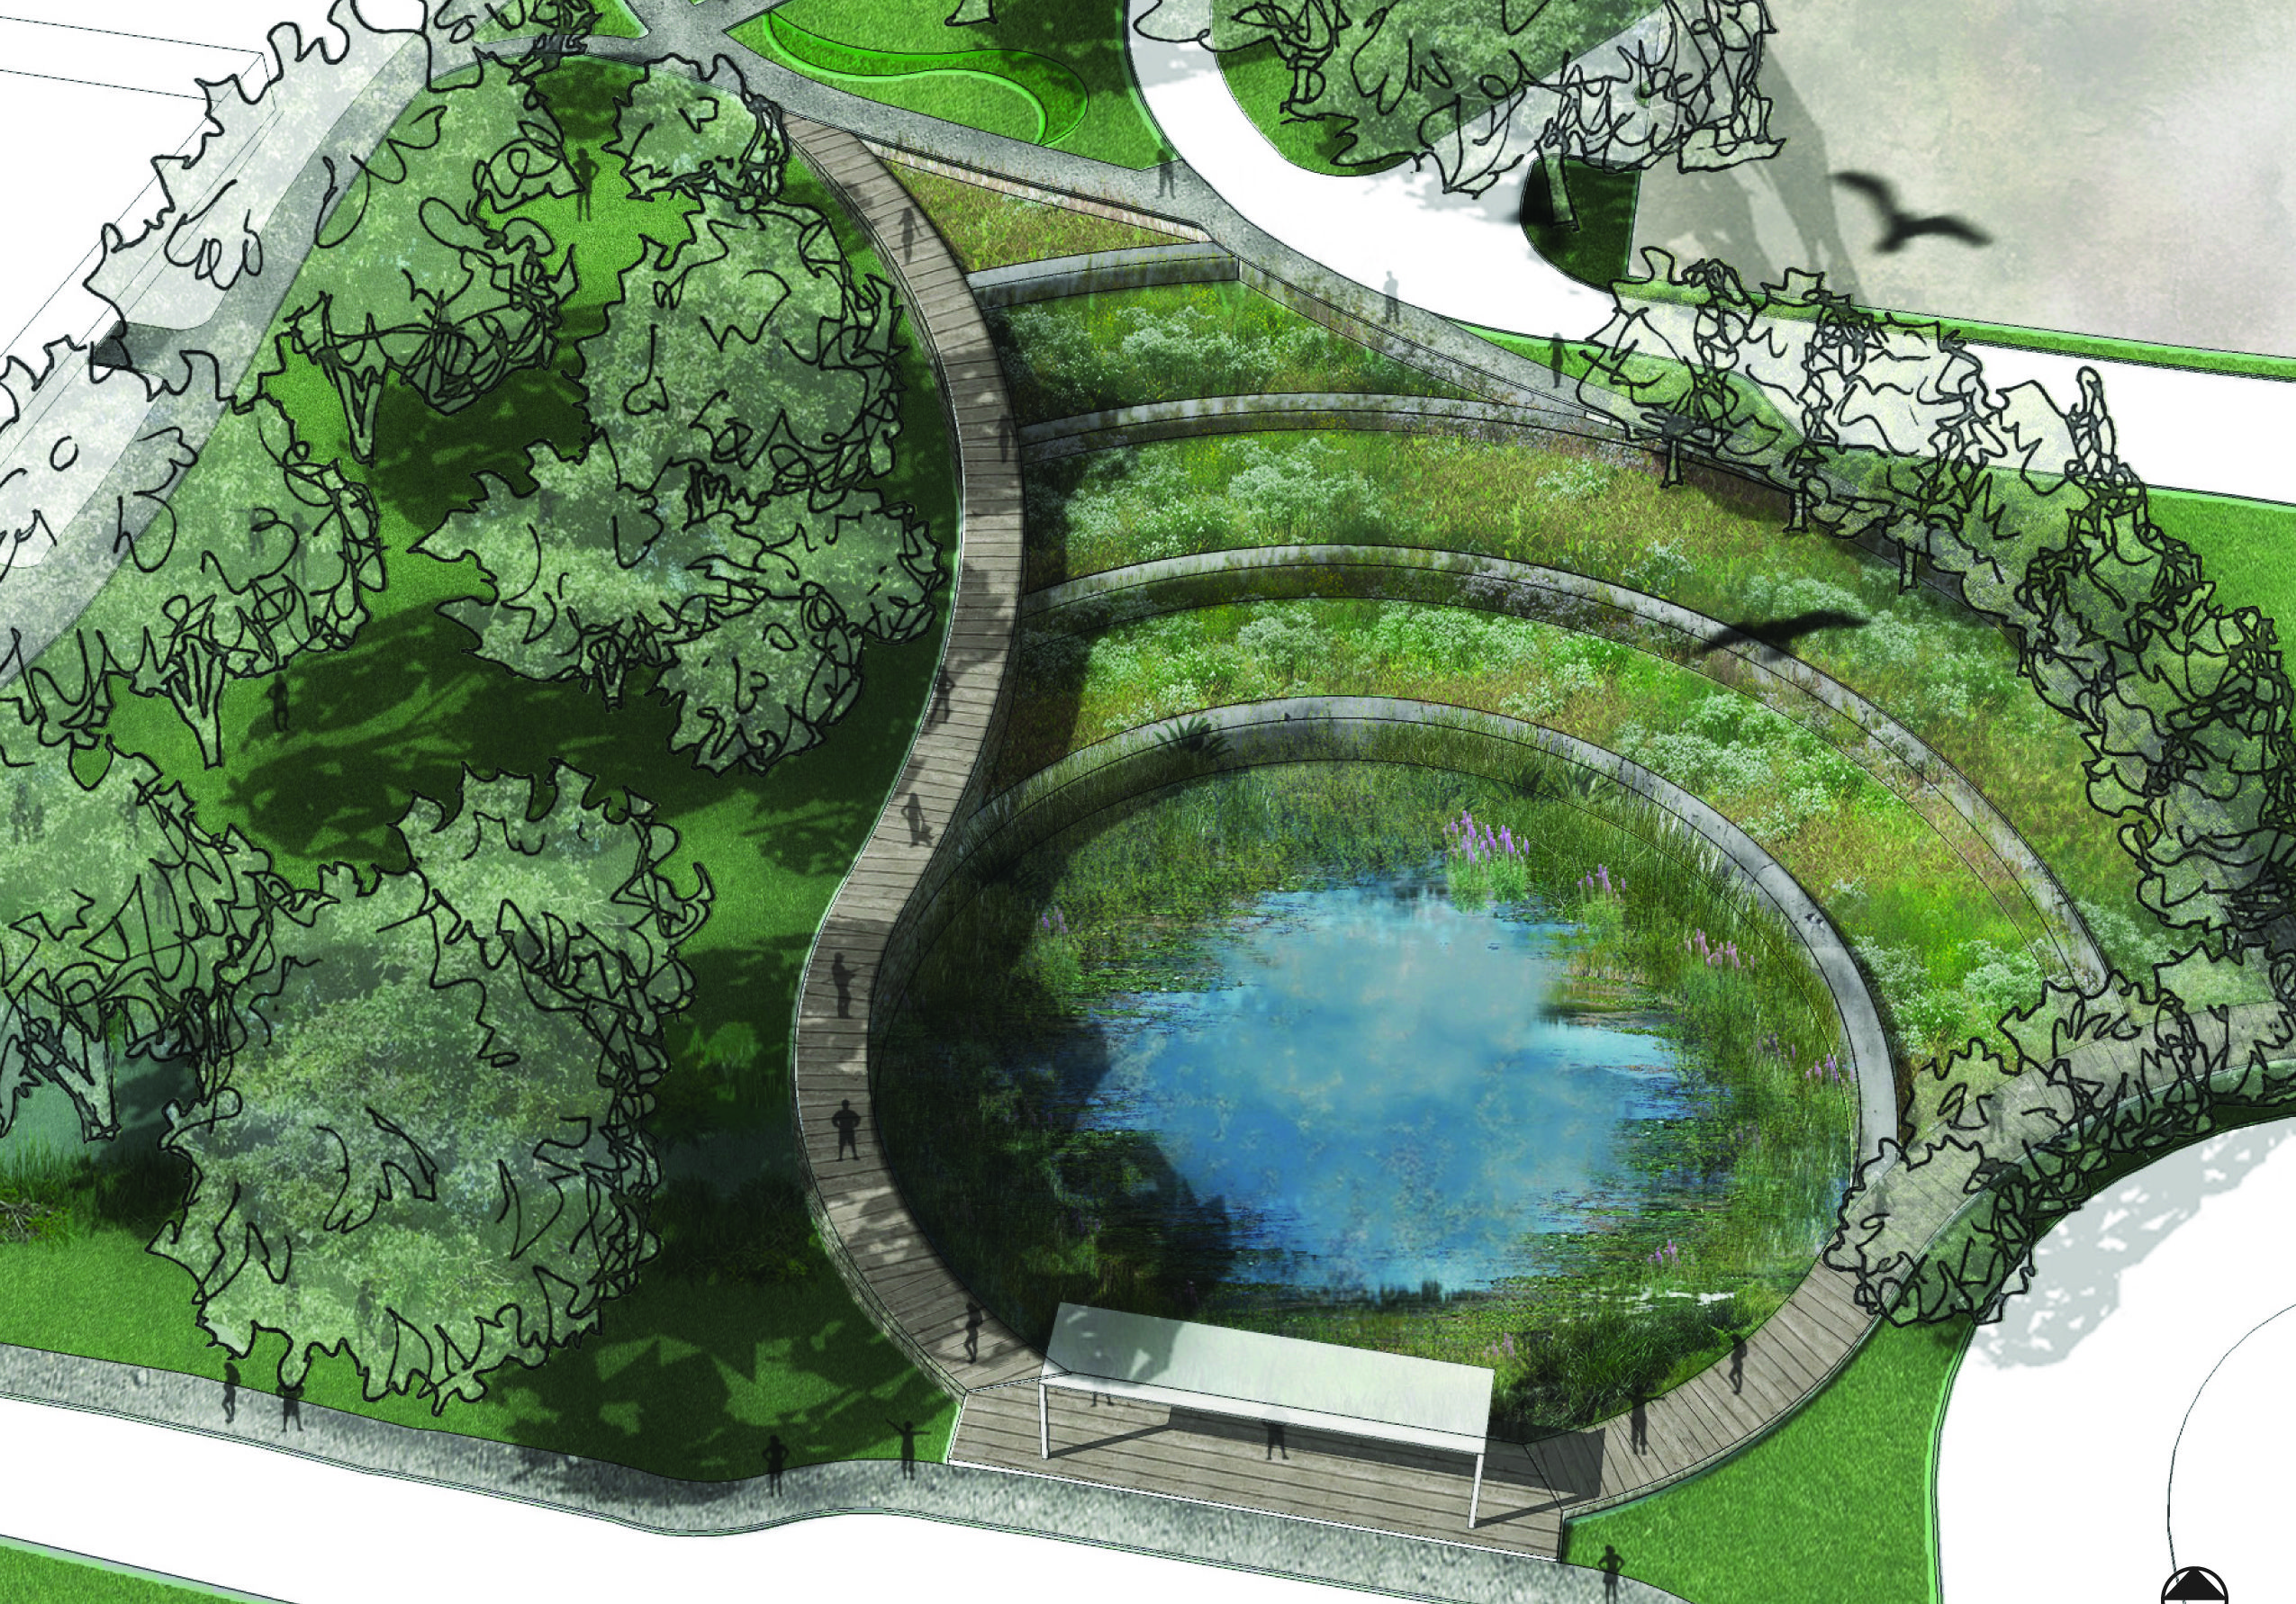 design of stormwater detention ponds epa announces winners of the 2013 campus rainworks